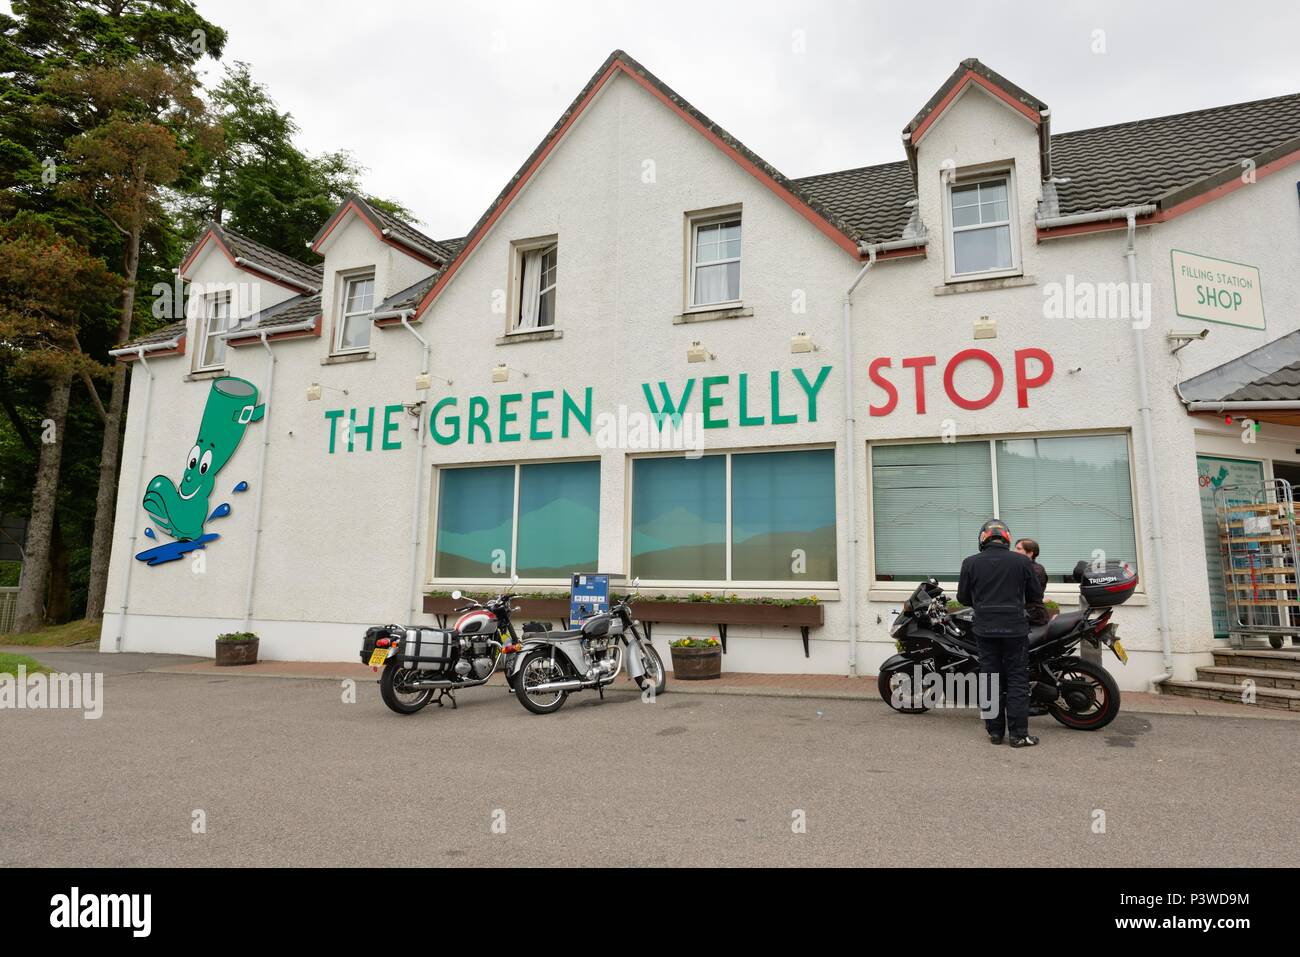 The Green Welly filling station and restaurant on the A82 at Tyndrum, Crianlarich, Scotland Uk, is a favourite stop for bikers and tourists. Stock Photo